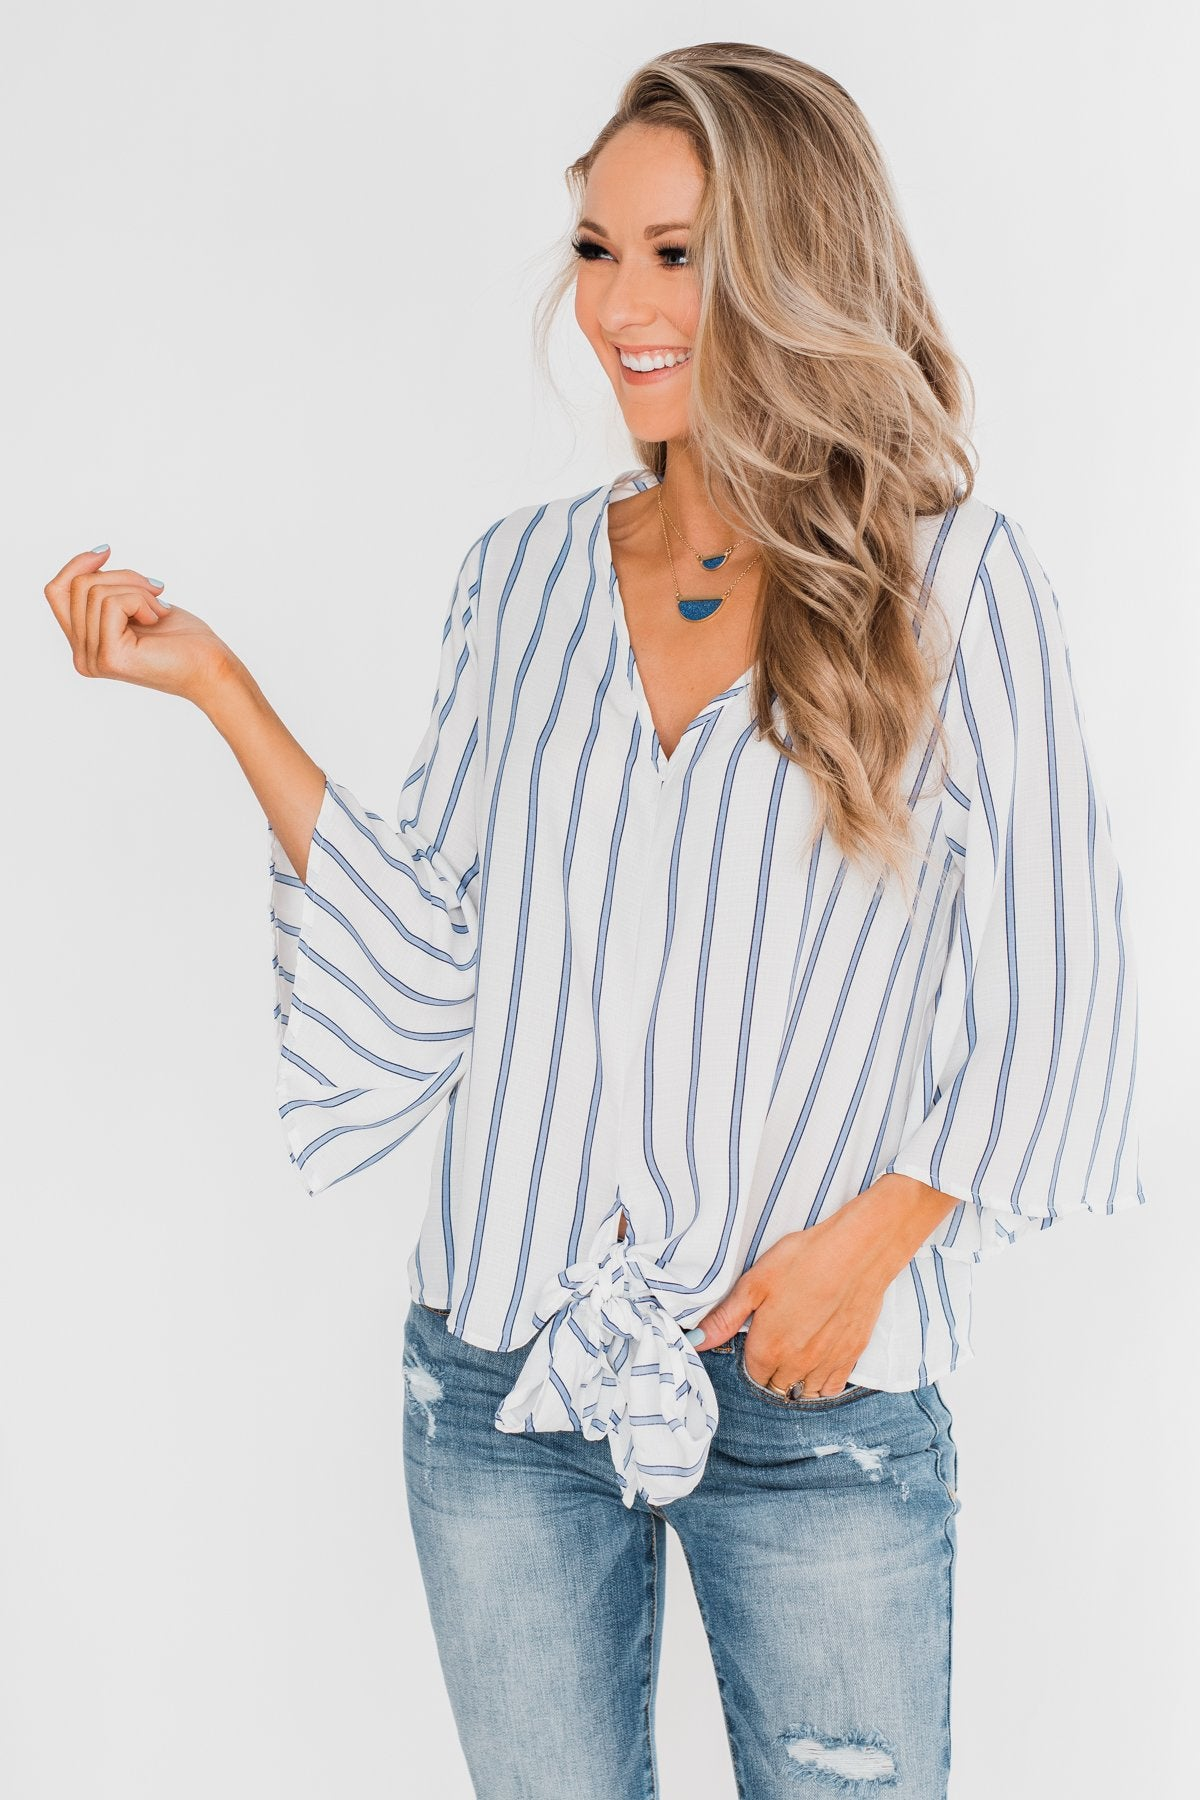 Endless Smiles Front Tie Polka Dot Top- Navy